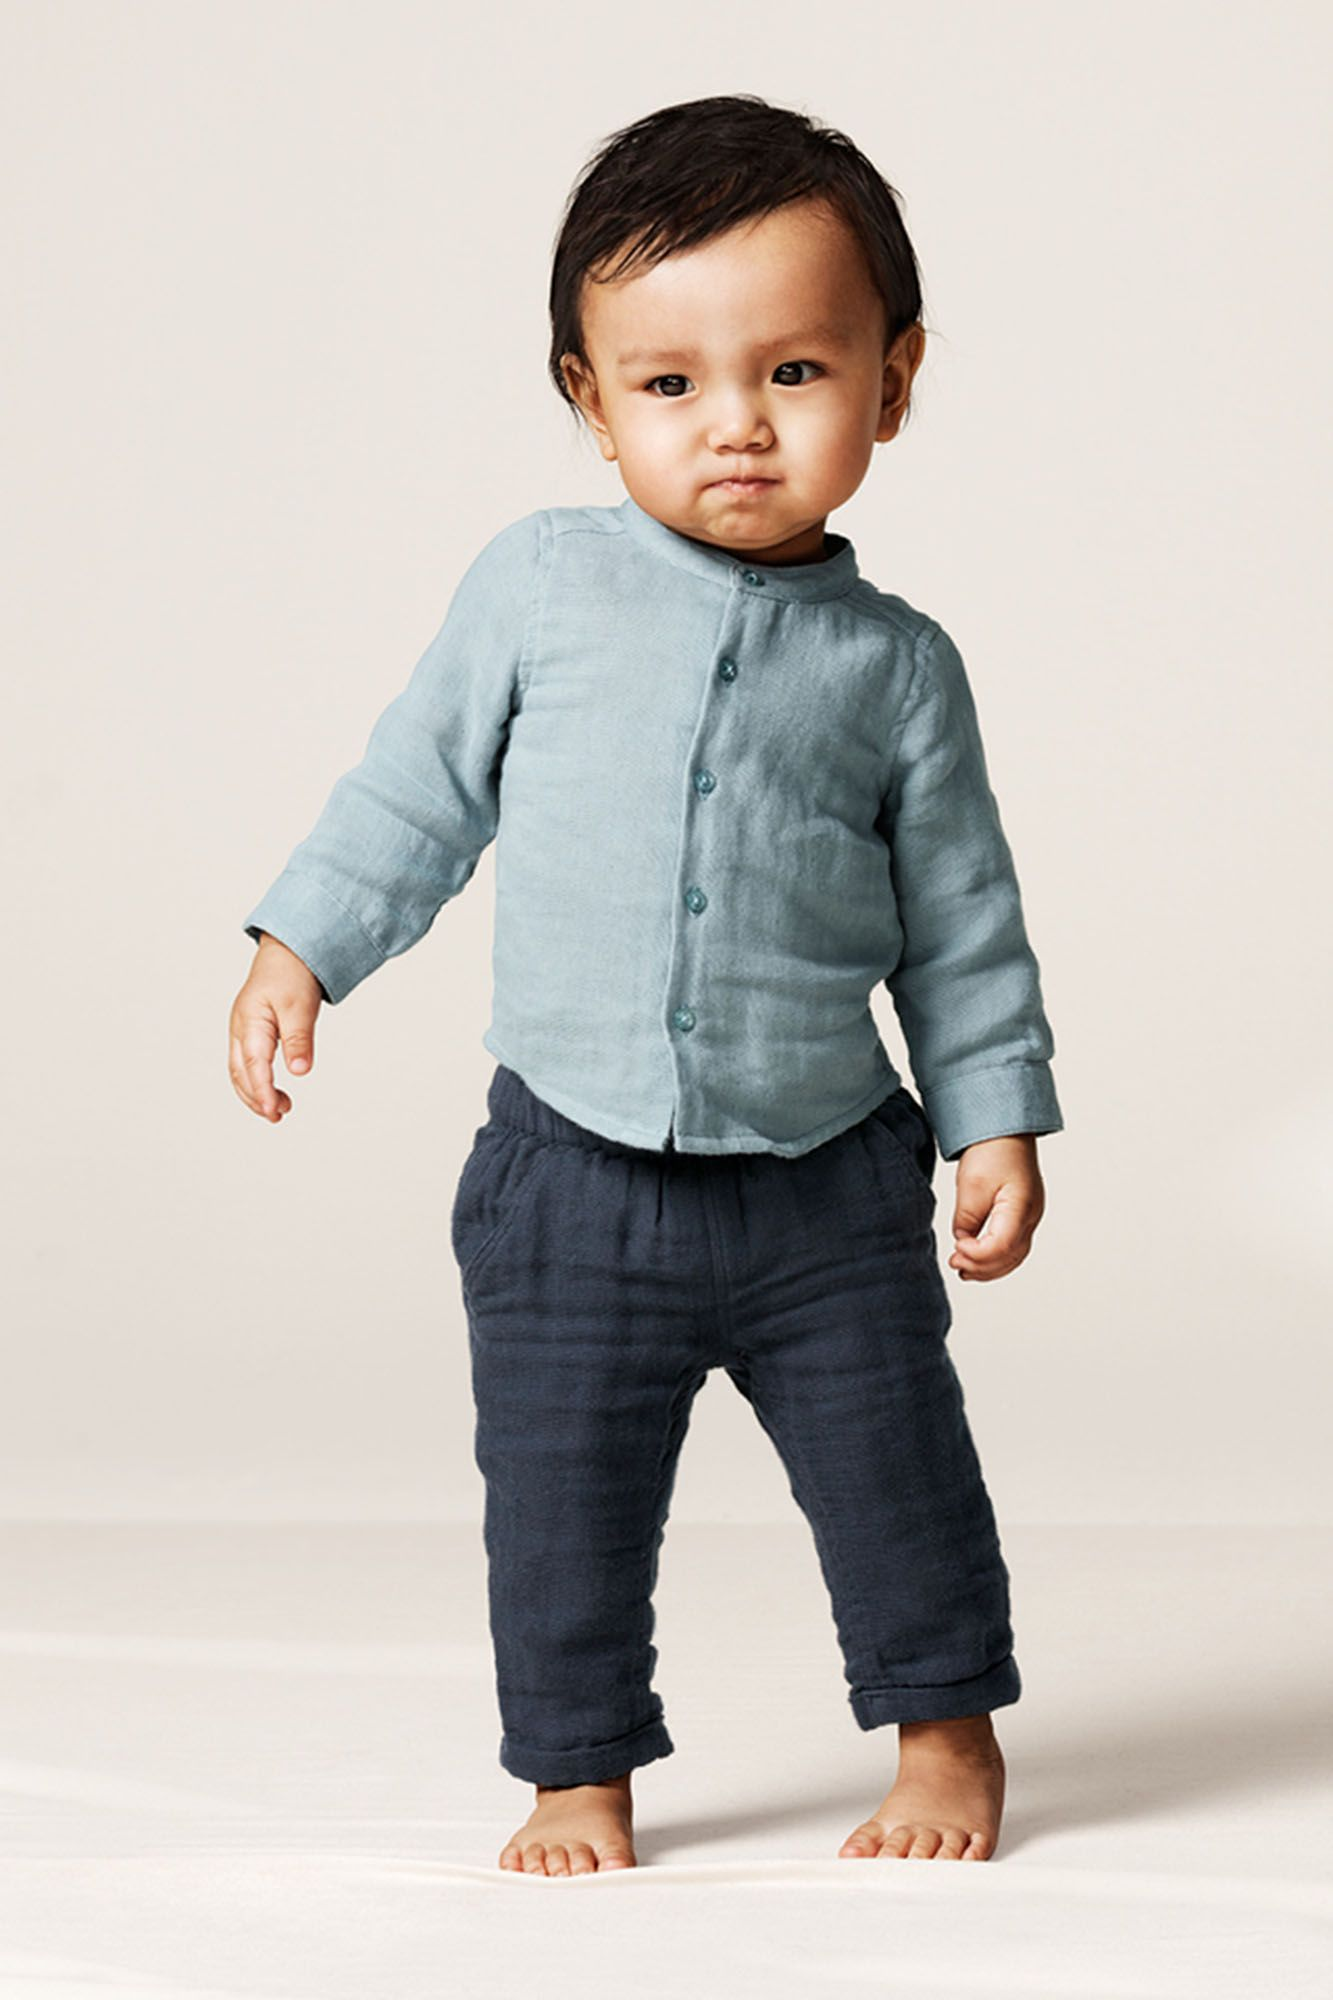 Baby Exclusive H&M Kids H&M FOR THE KIDS Pinterest